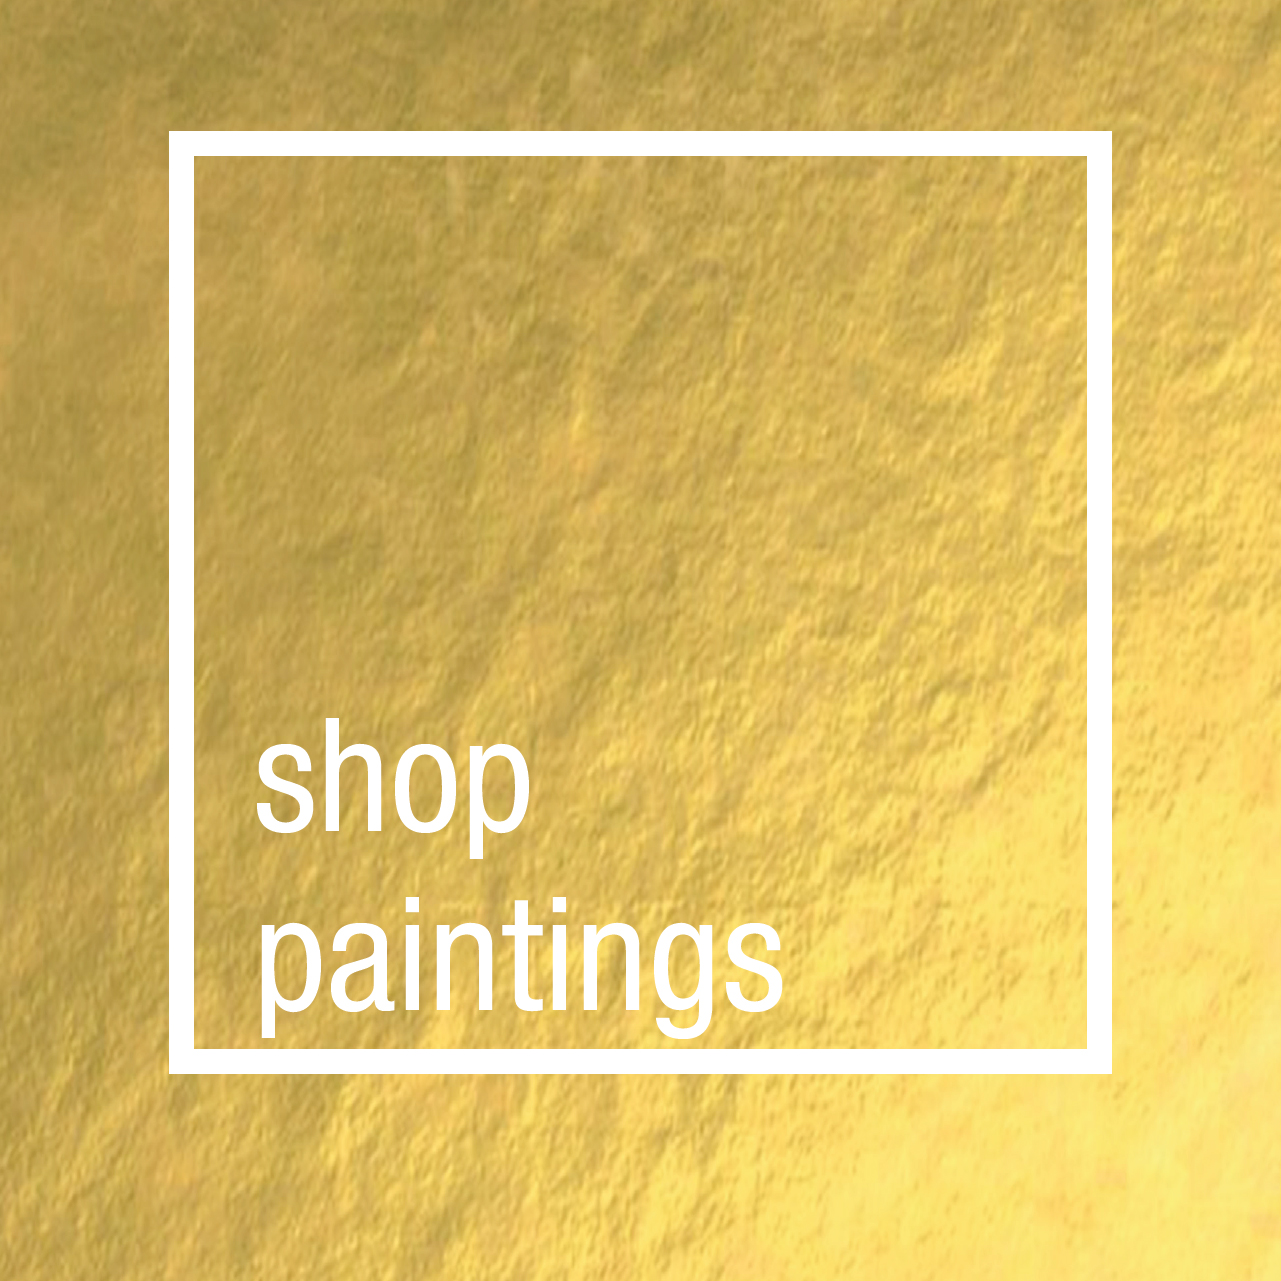 shop paintings-07.jpg